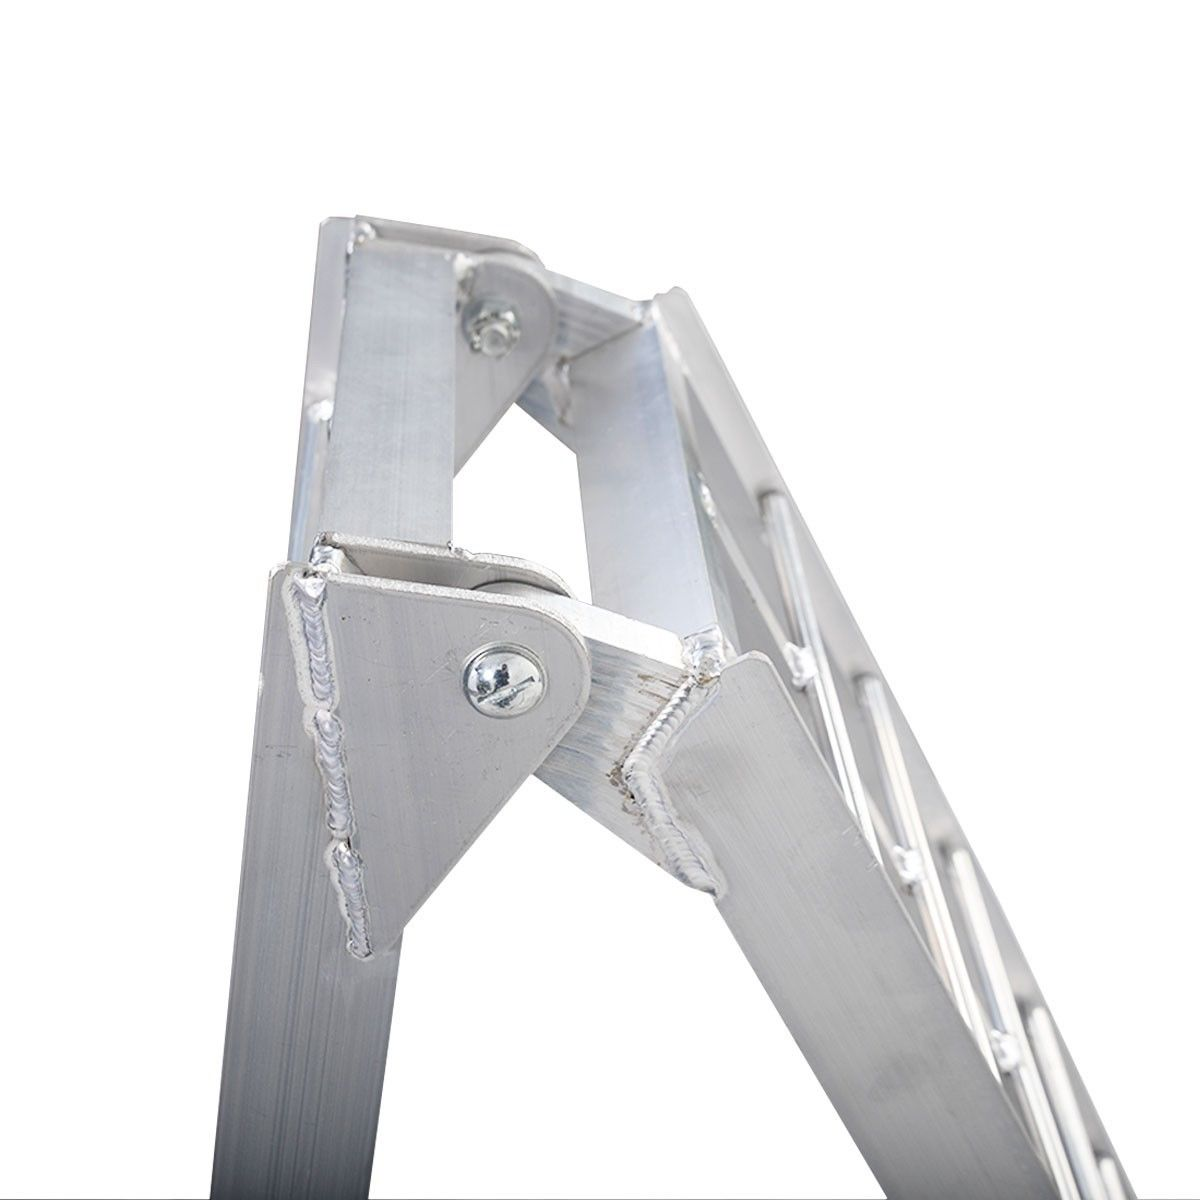 7.5' Arched Motorcycle Bike Folding Loading Ramps